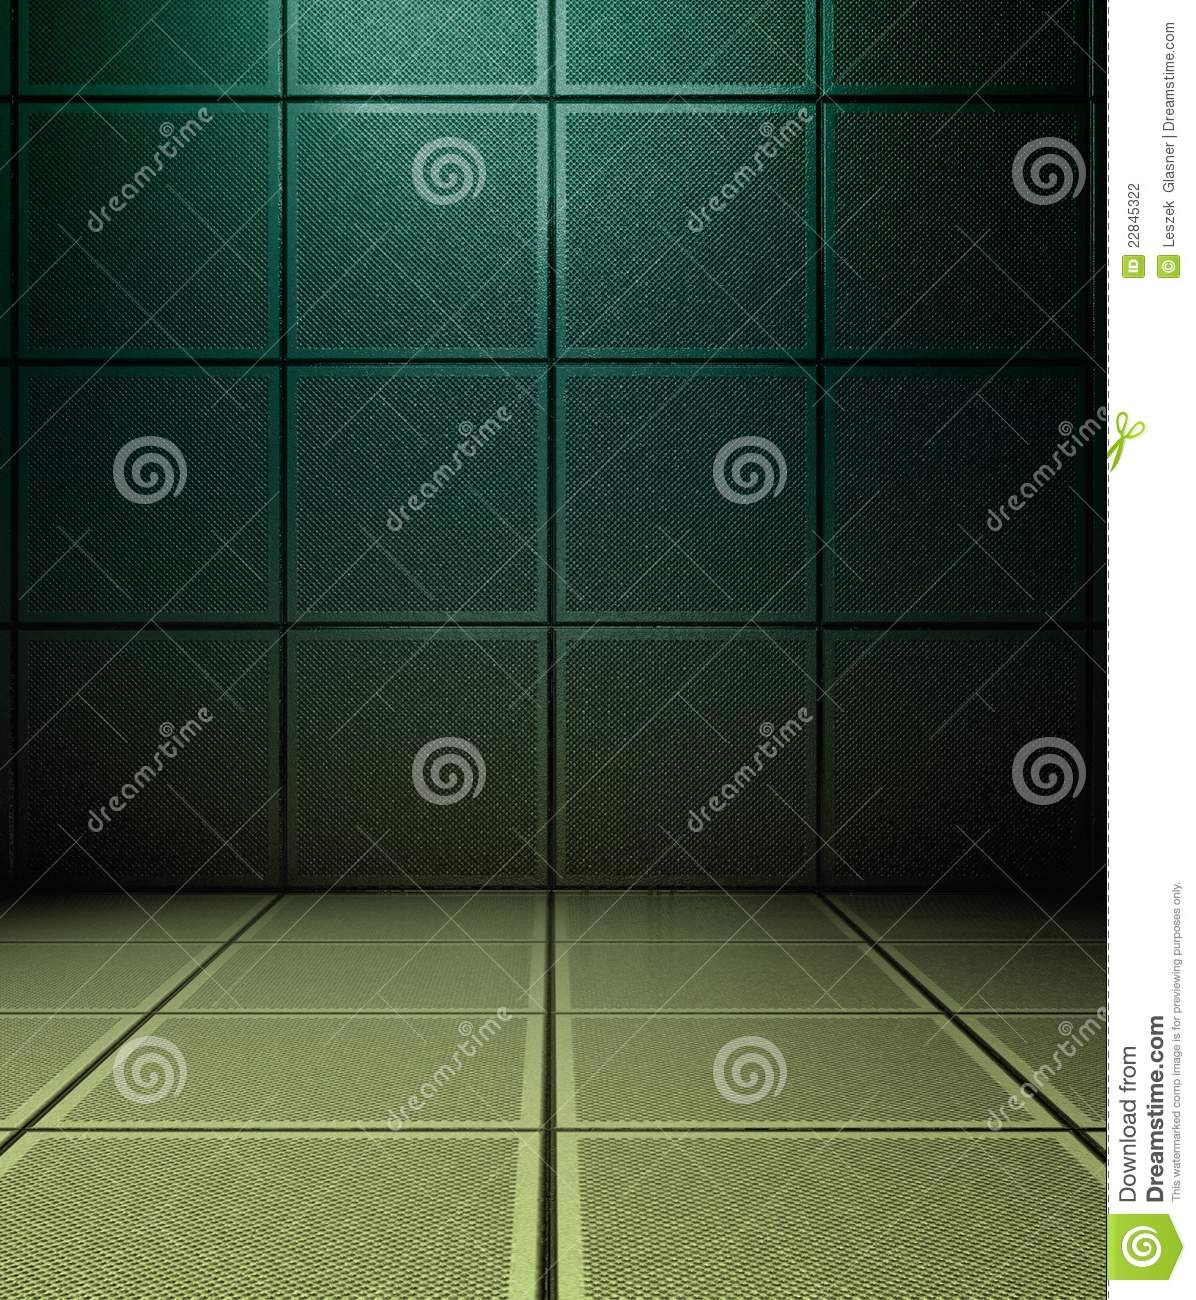 3d concrete or metal tiles stock photography image 22845322 for 3d concrete tiles